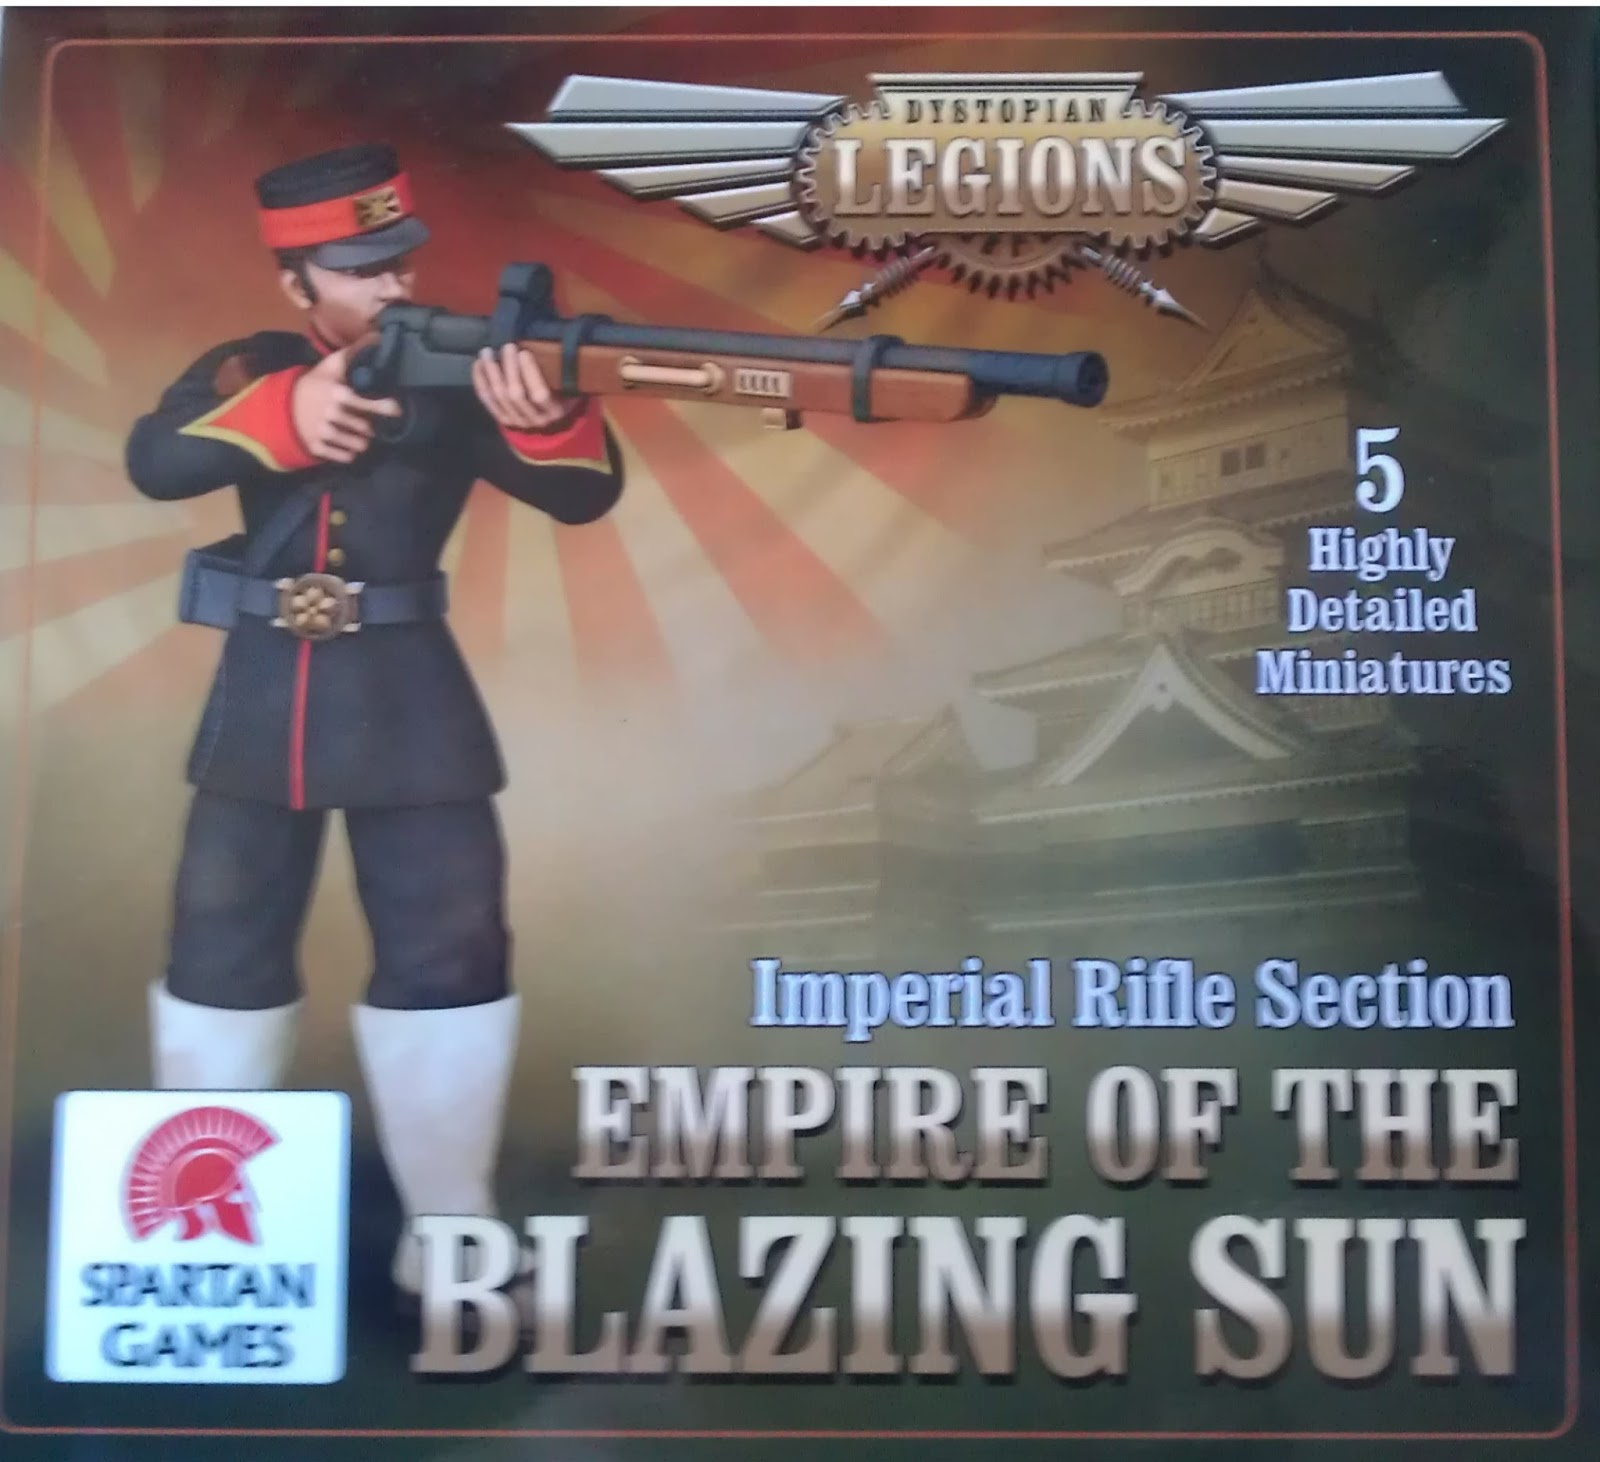 Review War Games: Empire of the blazing sun Imperial rifles